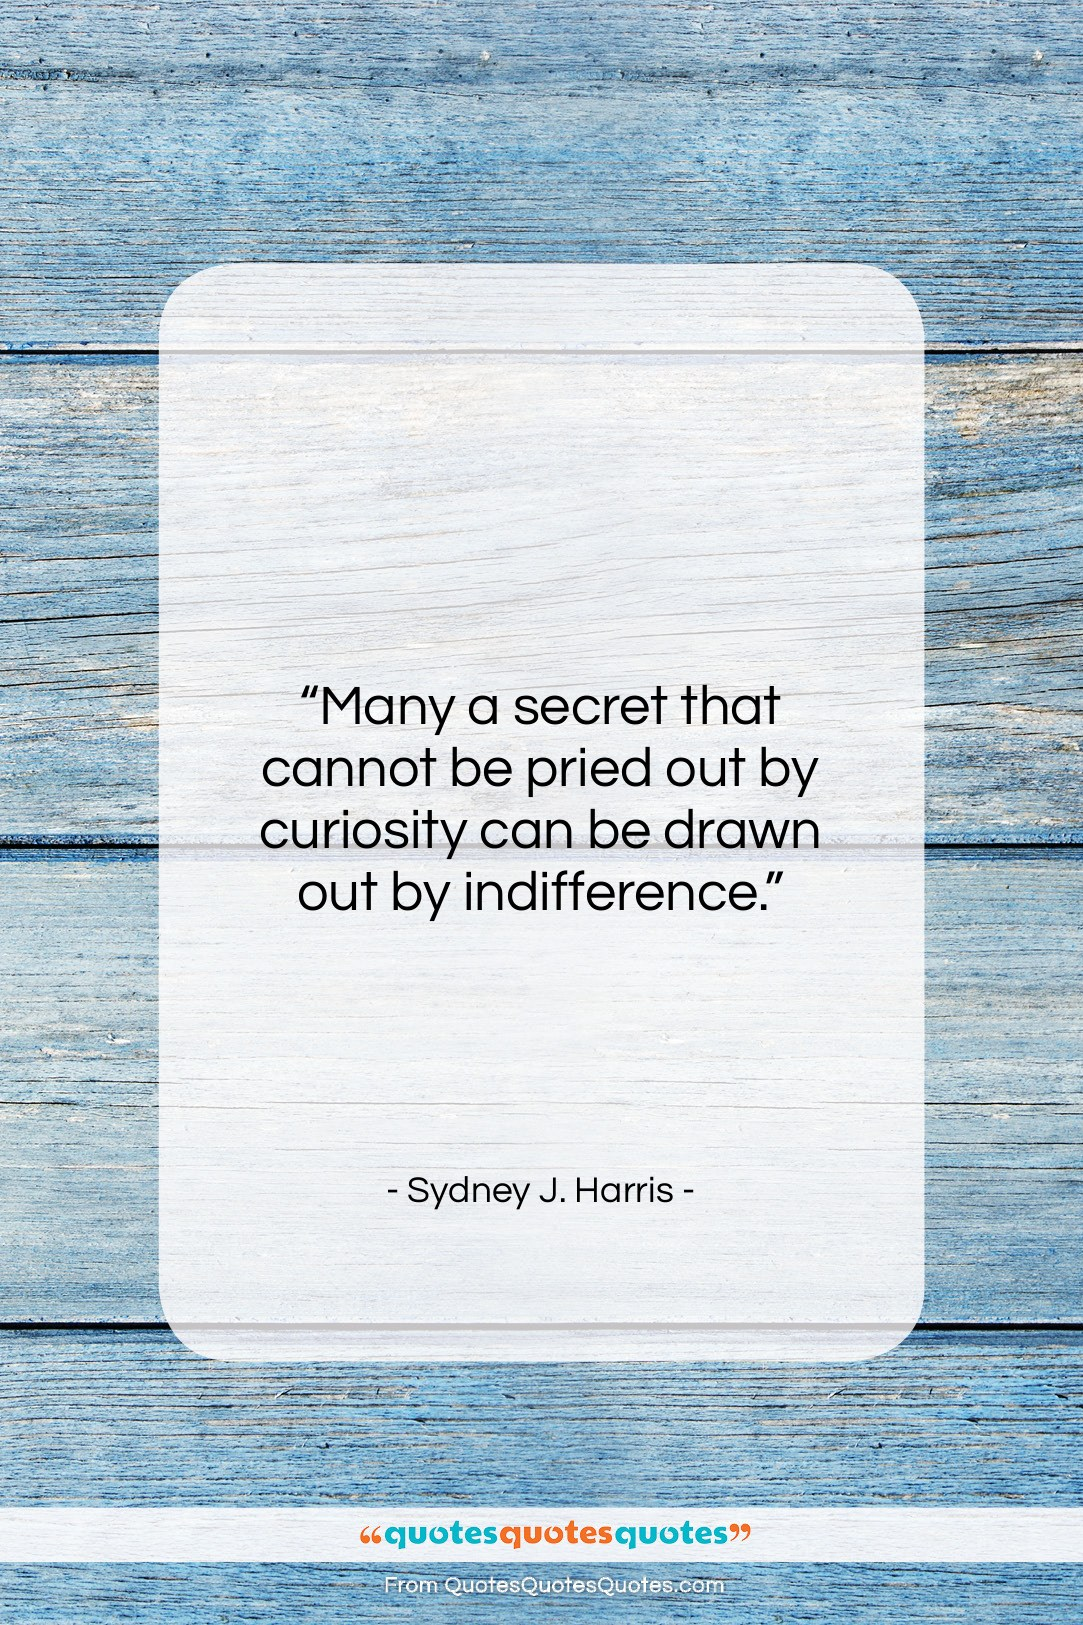 """Sydney J. Harris quote: """"Many a secret that cannot be pried…""""- at QuotesQuotesQuotes.com"""